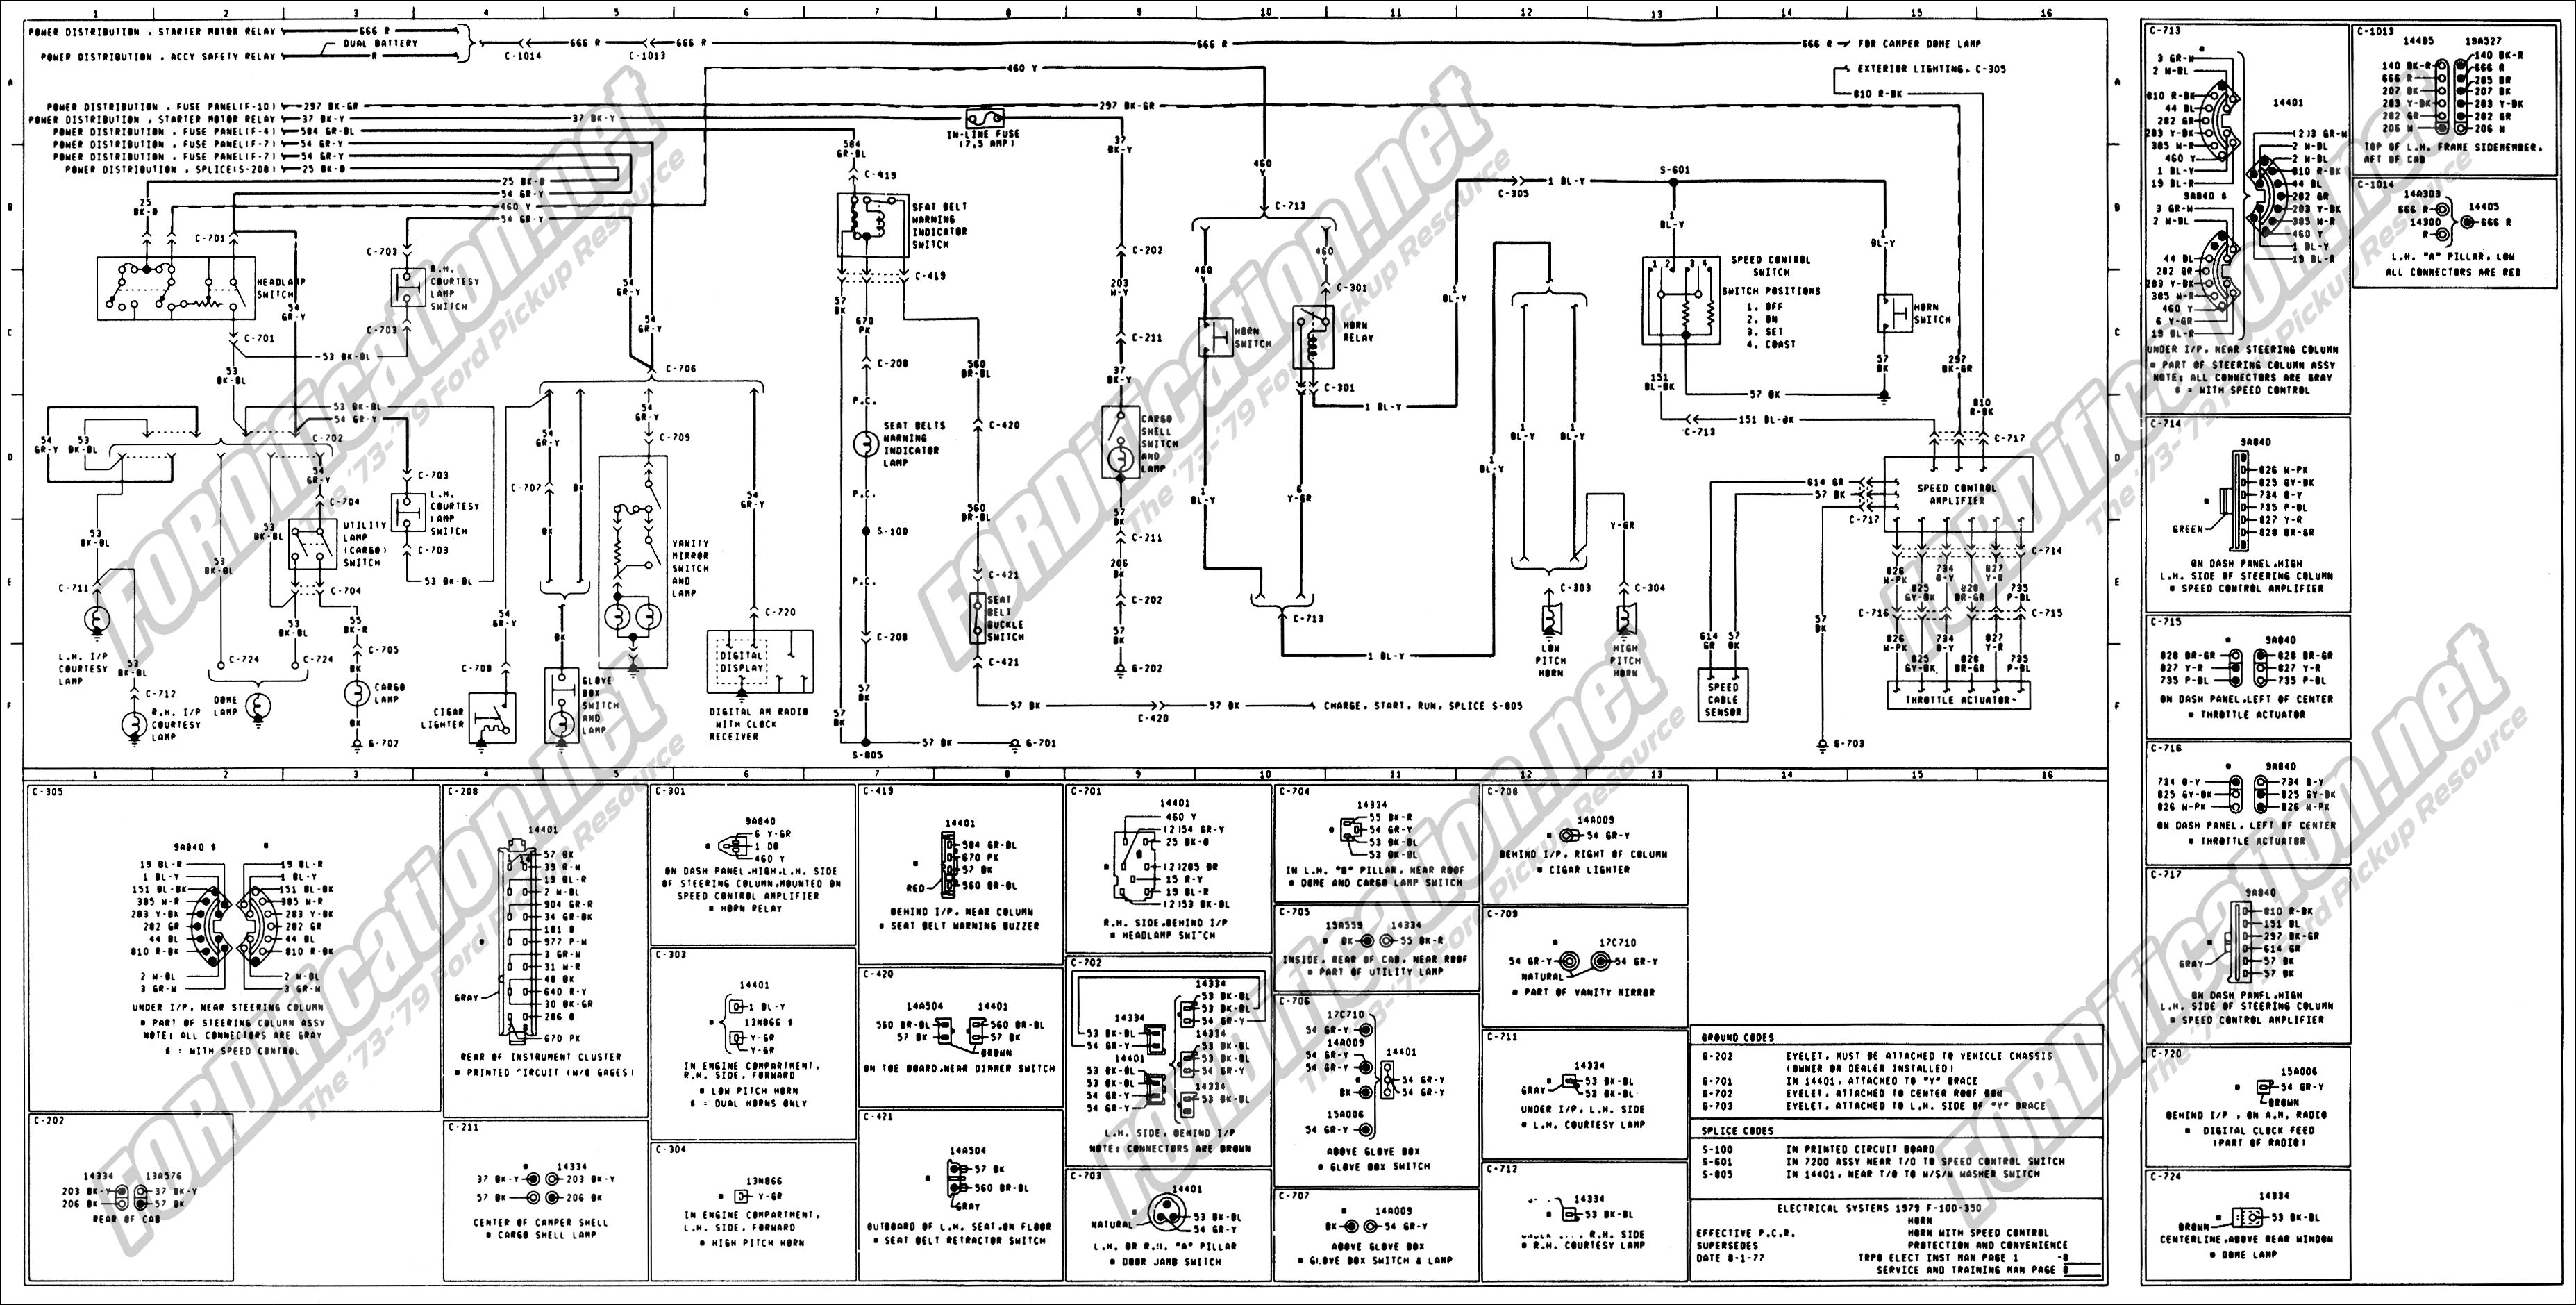 wiring_79master_8of9 1973 1979 ford truck wiring diagrams & schematics fordification net 1978 bronco fuse box diagram at n-0.co